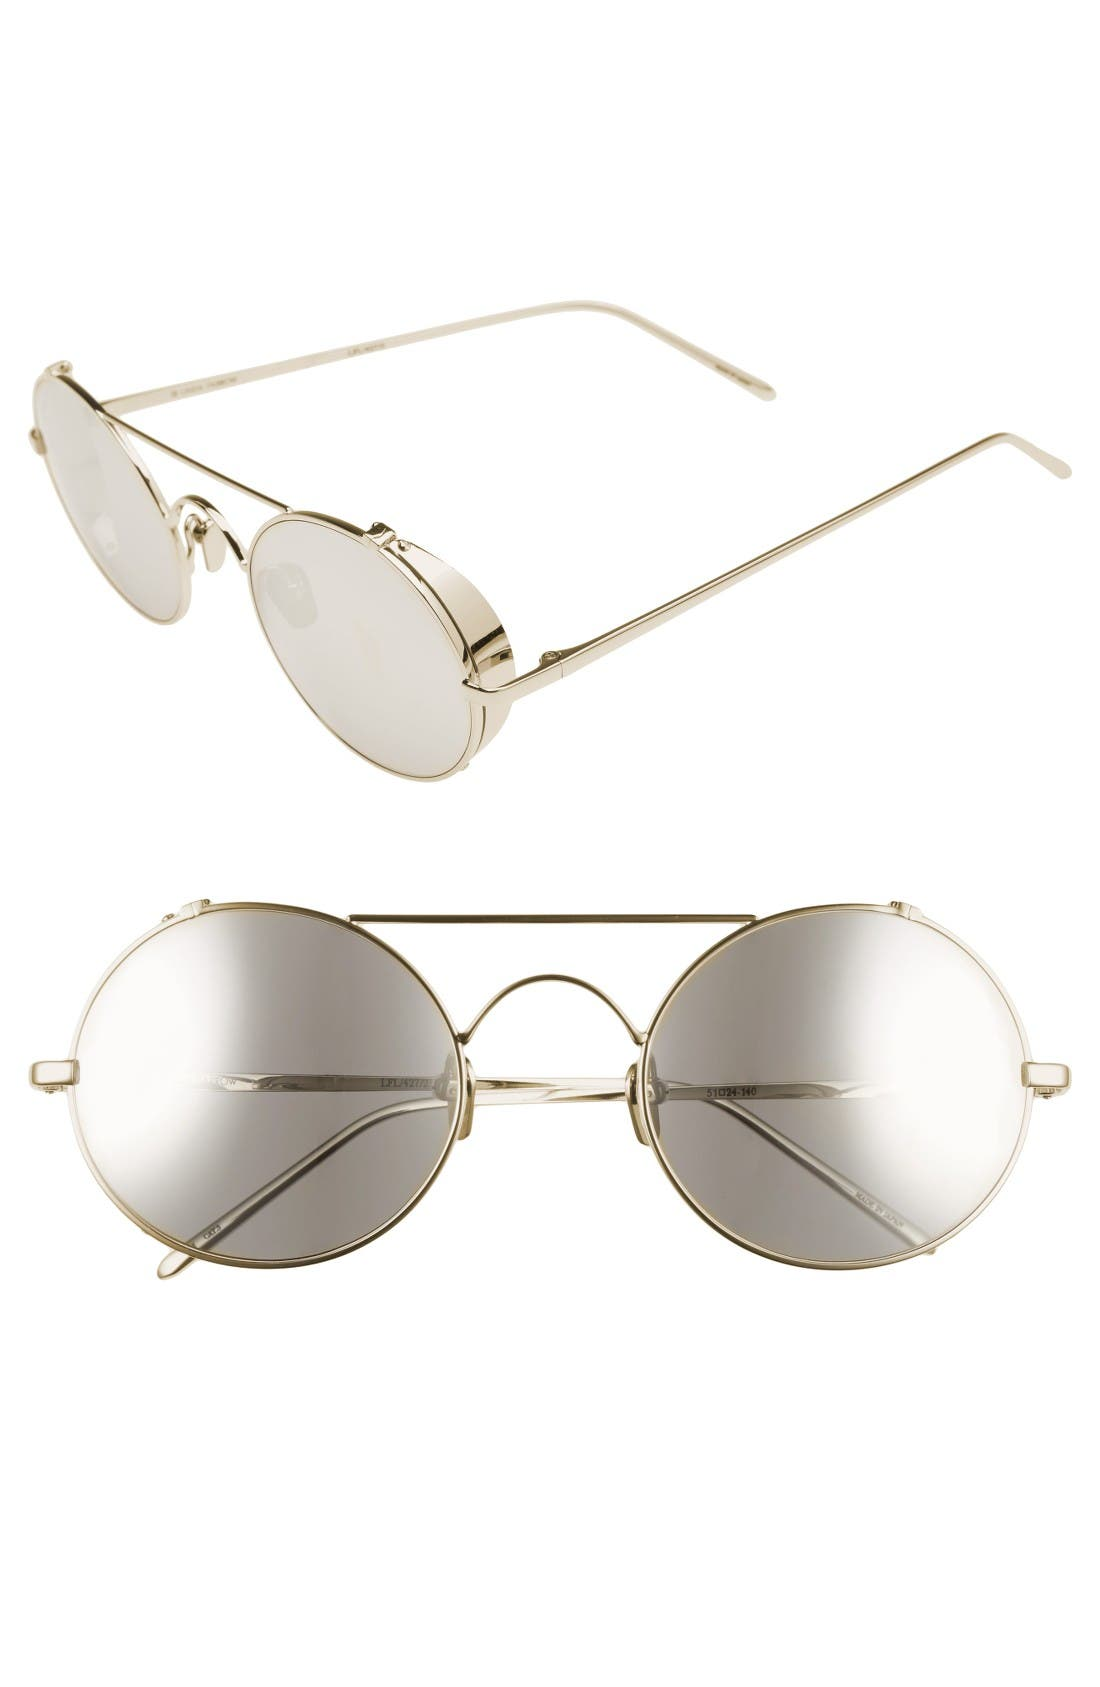 Linda Farrow 51mm Oval Sunglasses